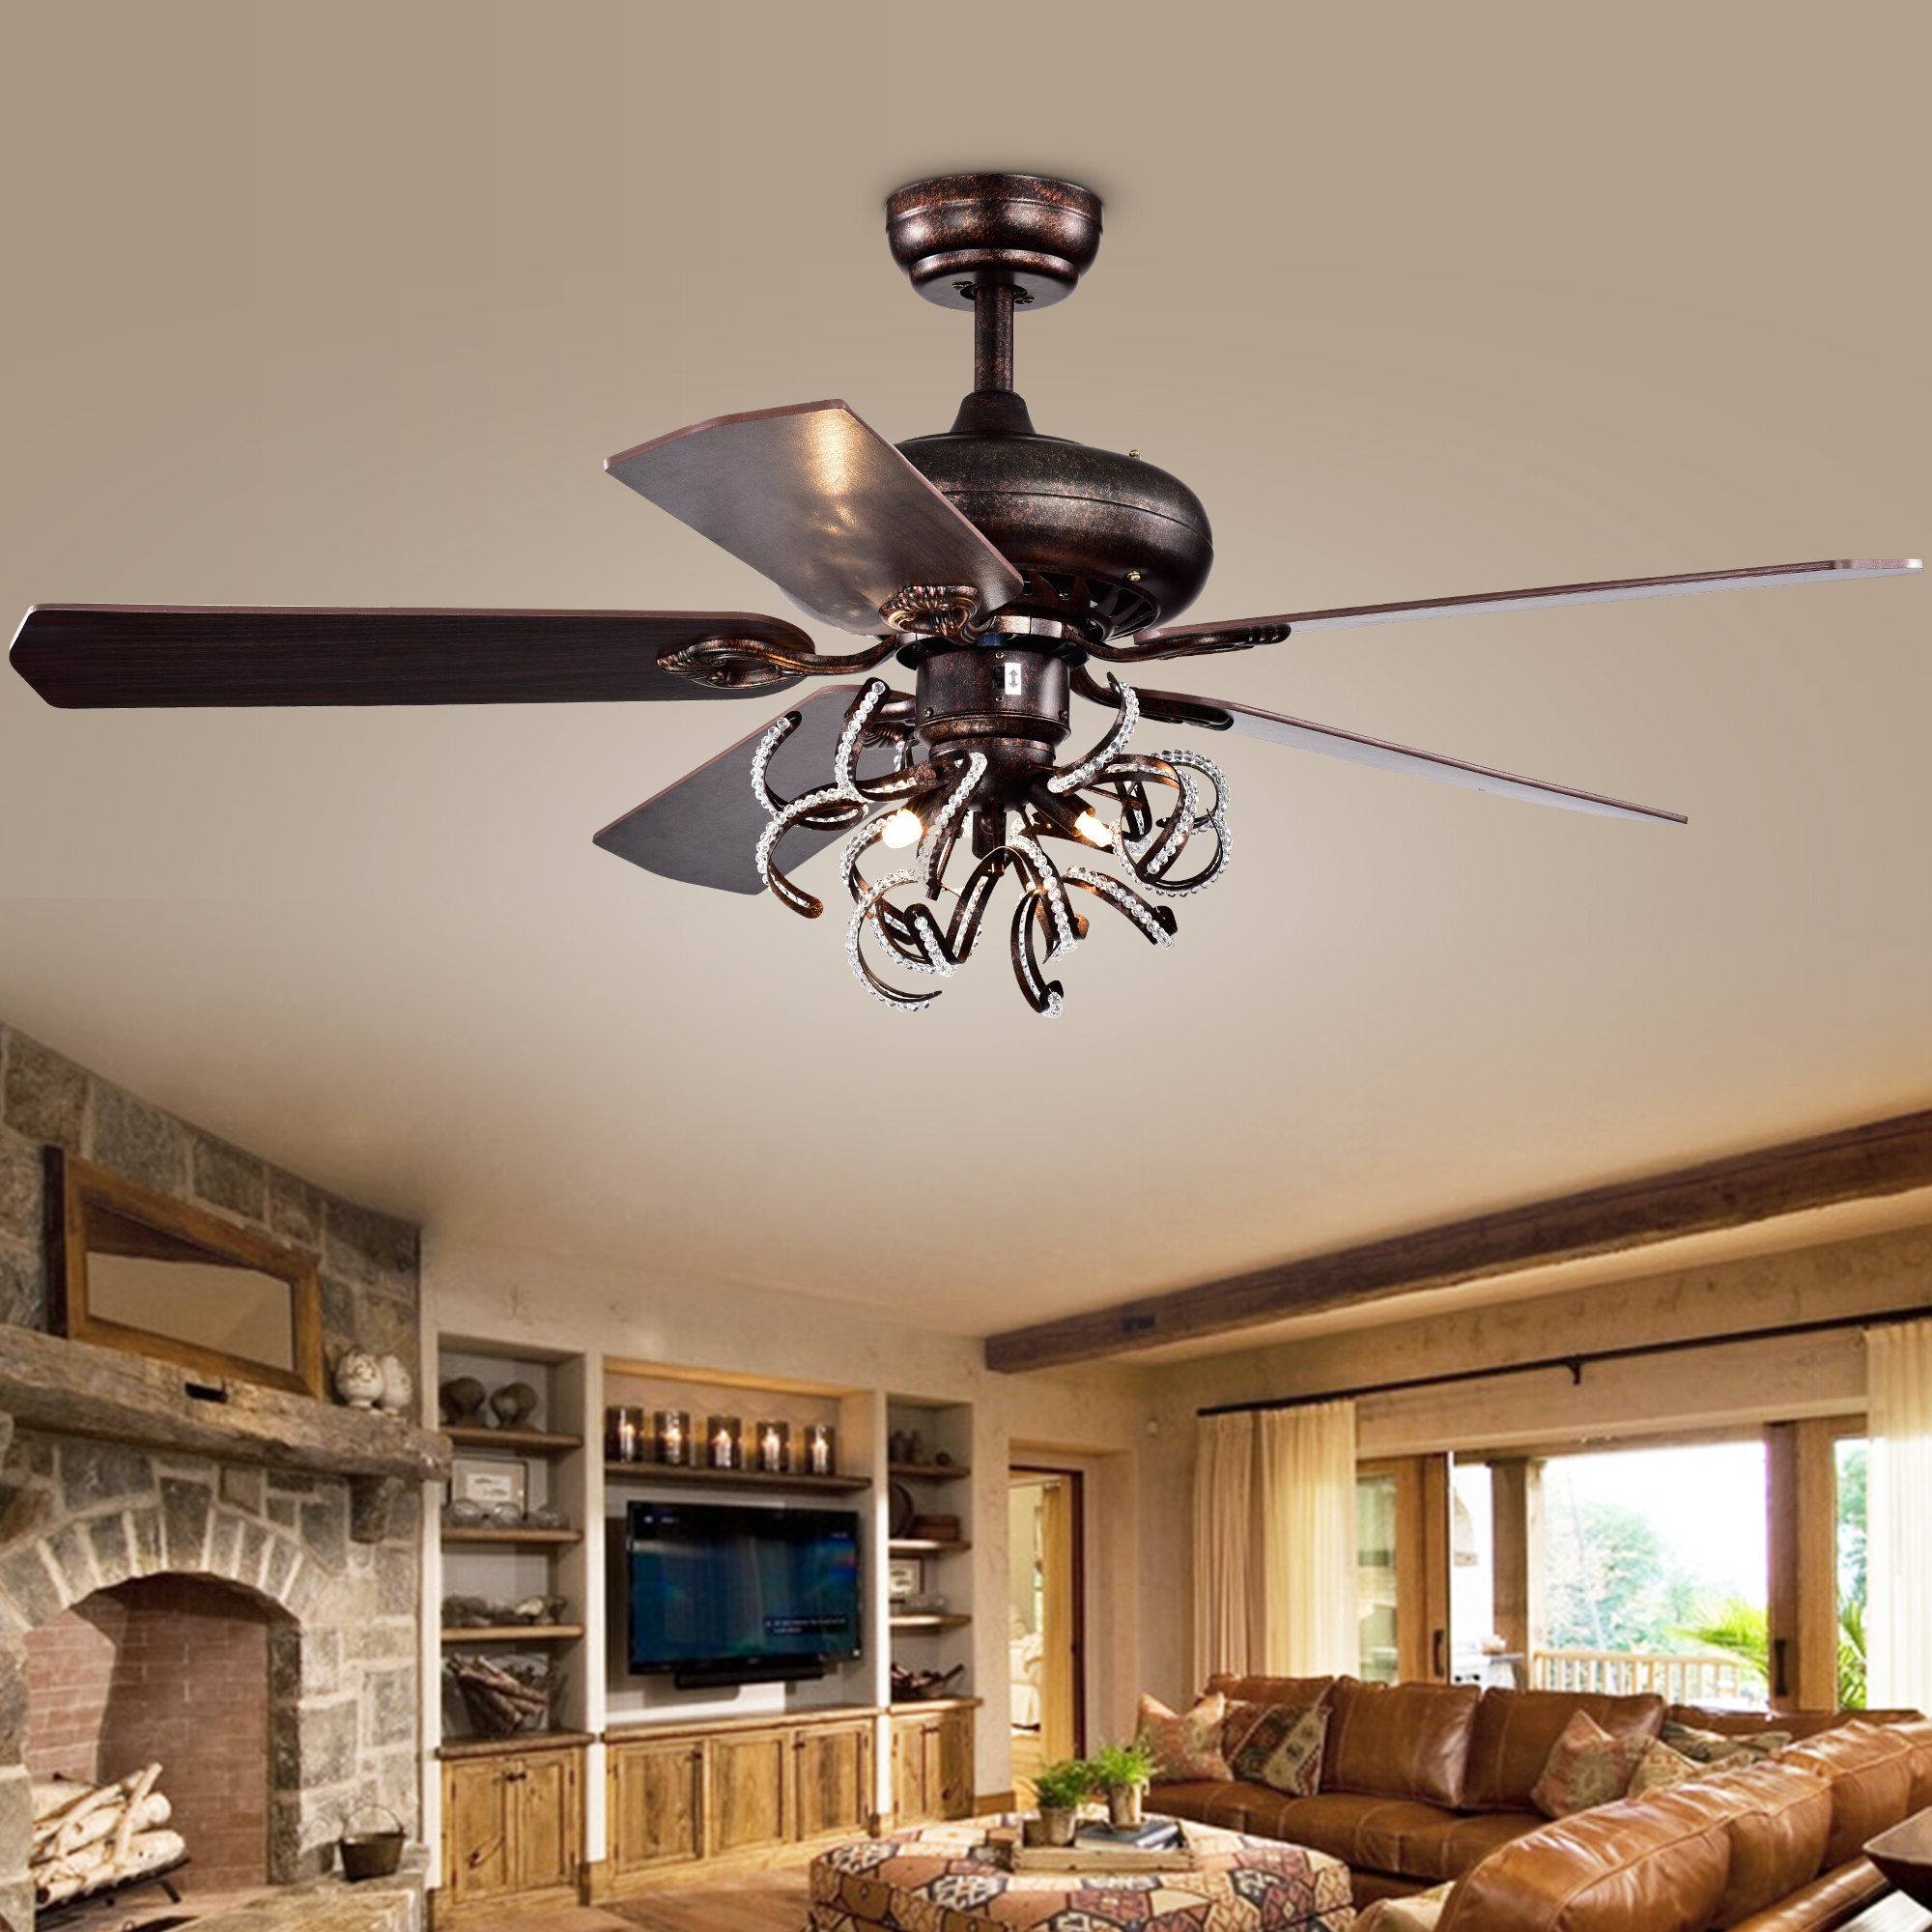 Fredericksen 5 Blade Ceiling Fans With Regard To Latest Christiansen 5 Blade Ceiling Fan, Light Kit Included (View 12 of 20)